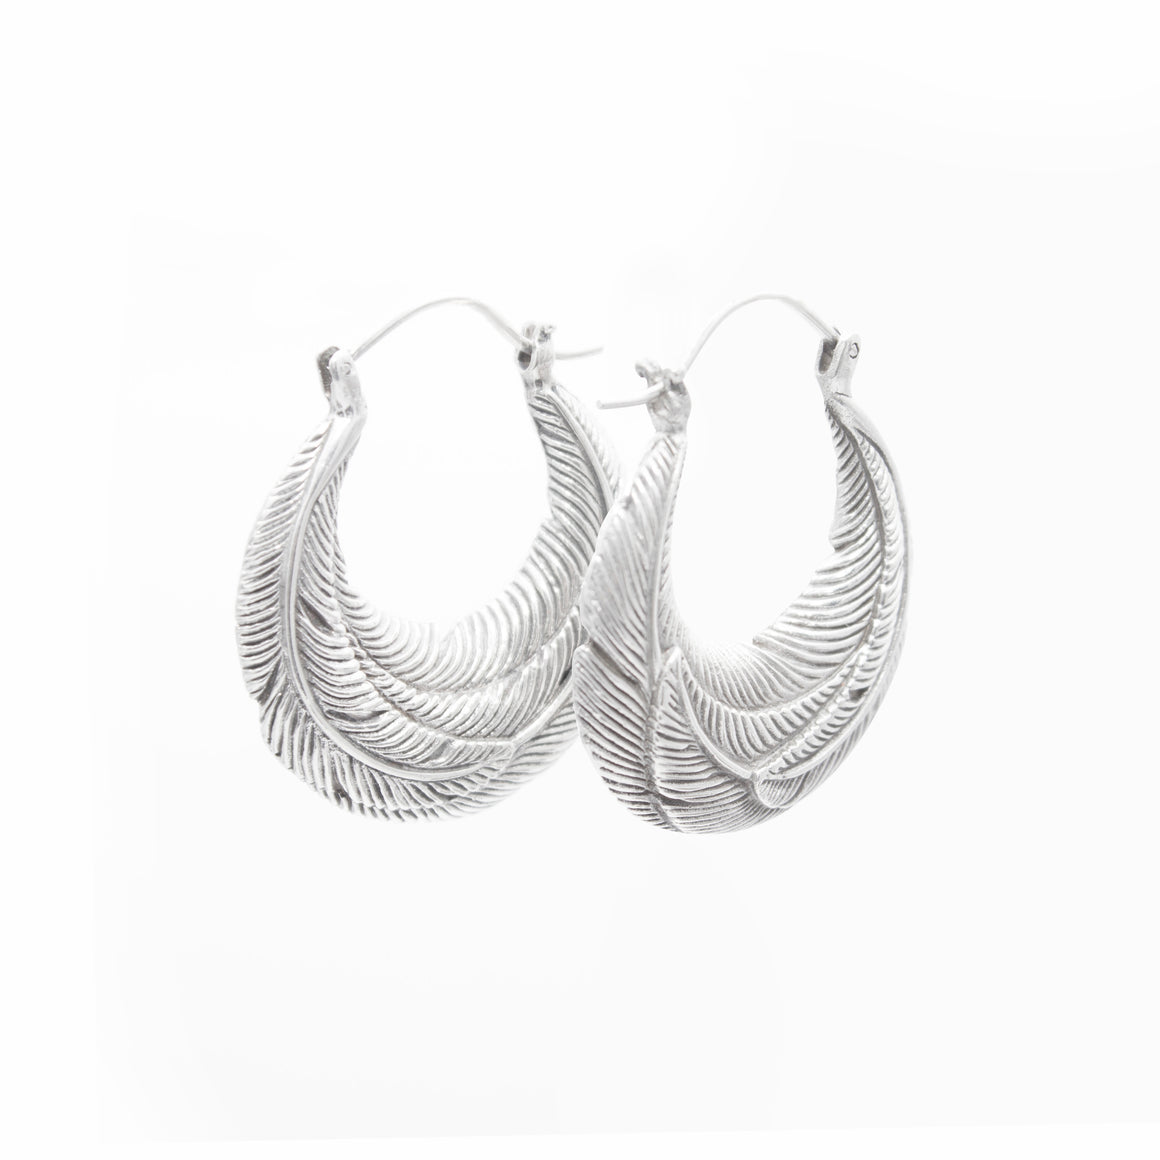 SMALL STERLING SILVER ROUNDED FEATHER HOOP EARRINGS